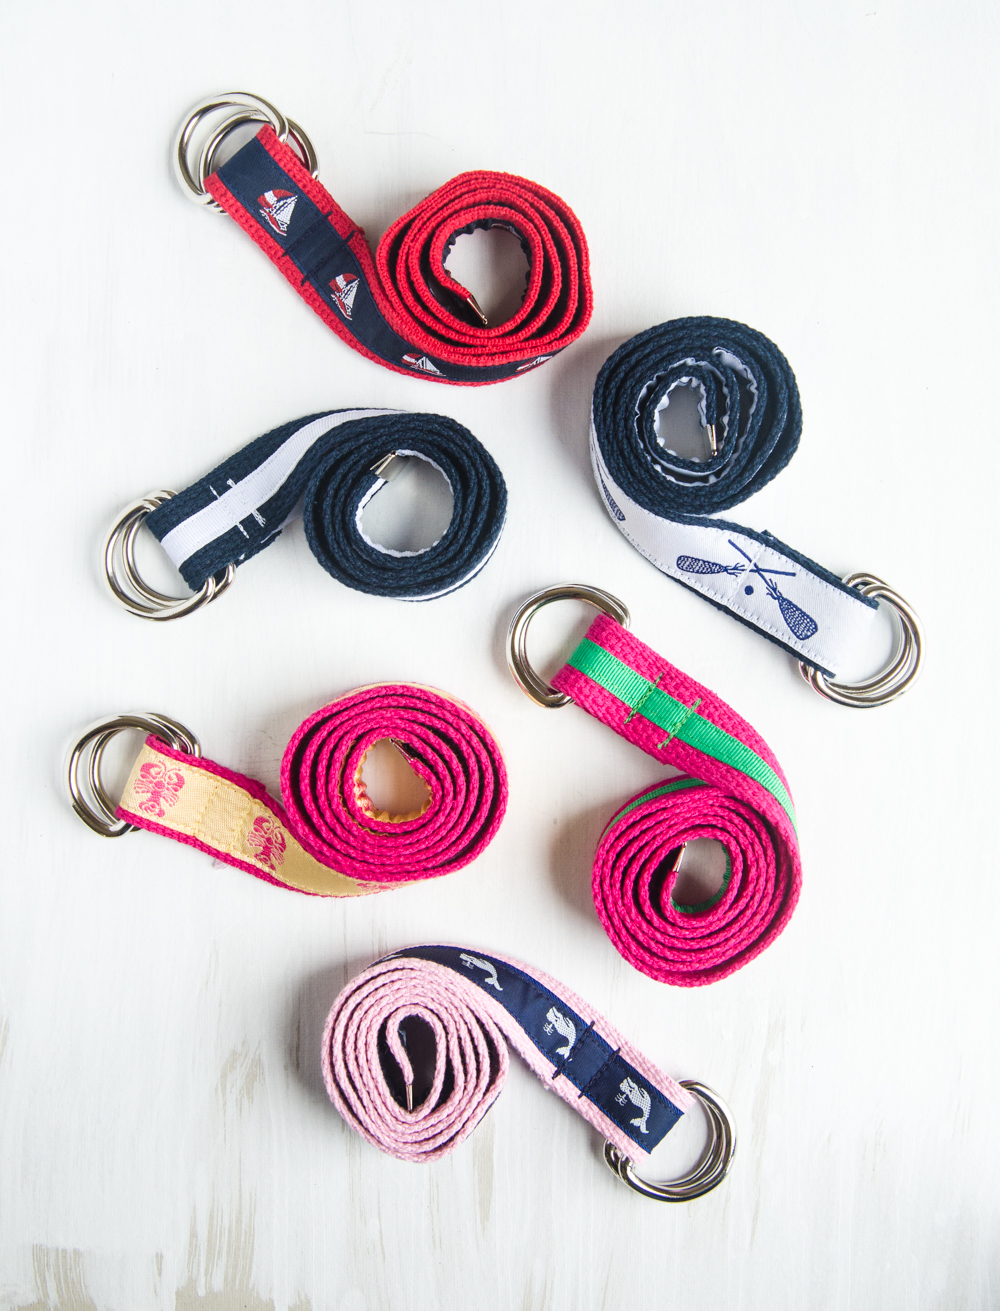 Kids Belts in ribbon styles to suit their personality